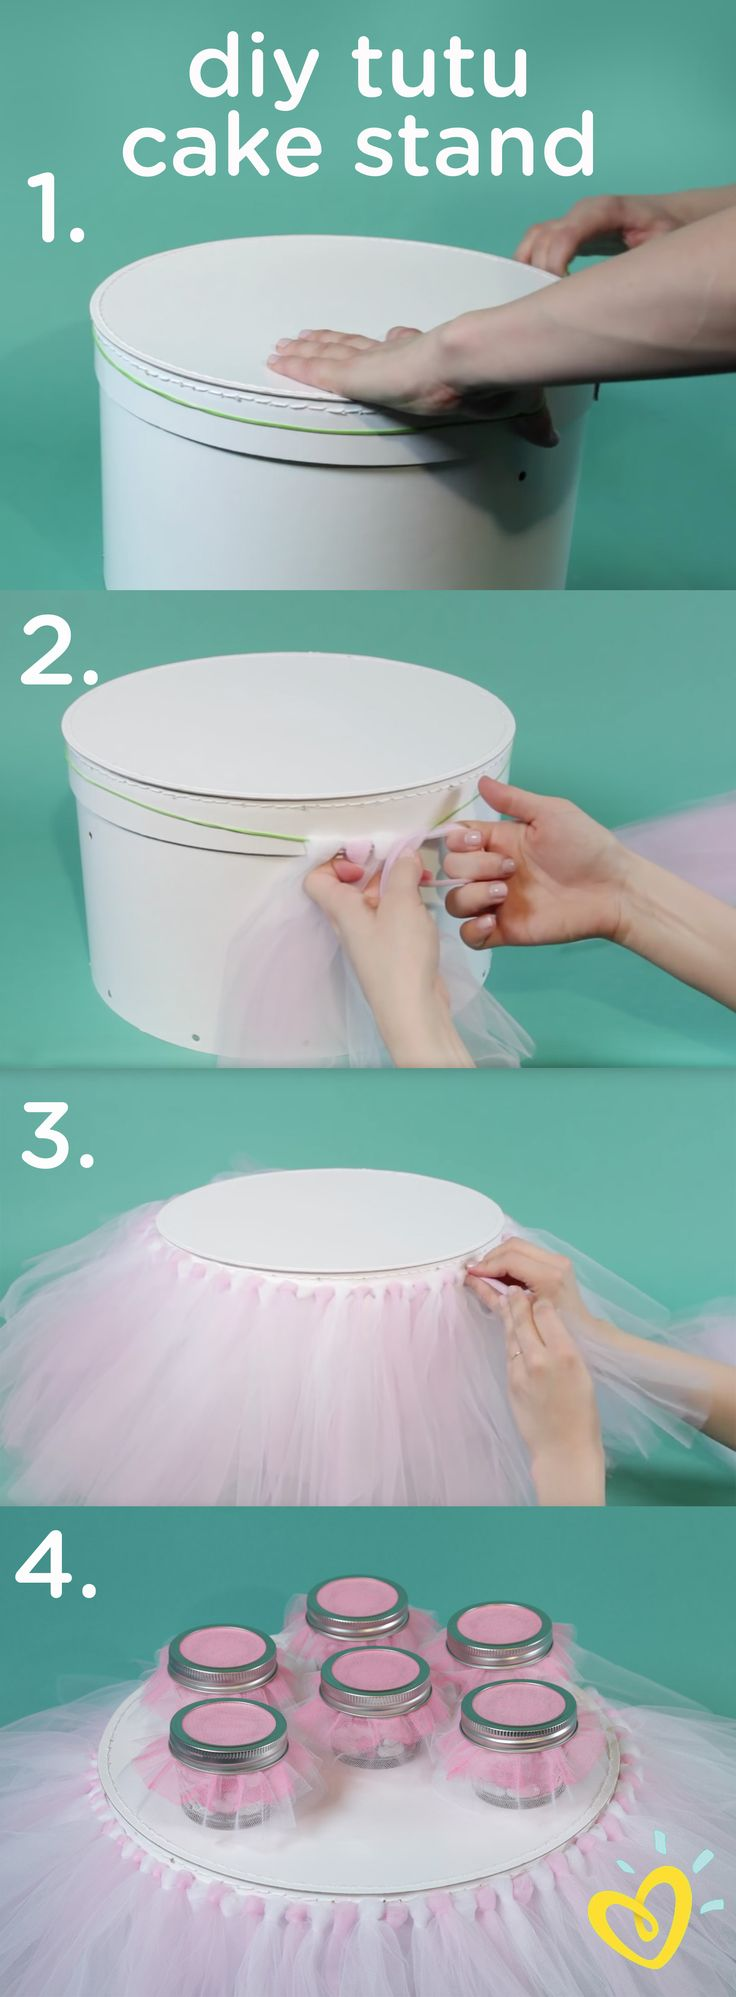 Add some color and fun to the cake stand at your next party with this DIY tutu cake stand, perfect for baby showers or first birthday celebrations. This video tutorial will show you how to create this look in just a few simple steps!